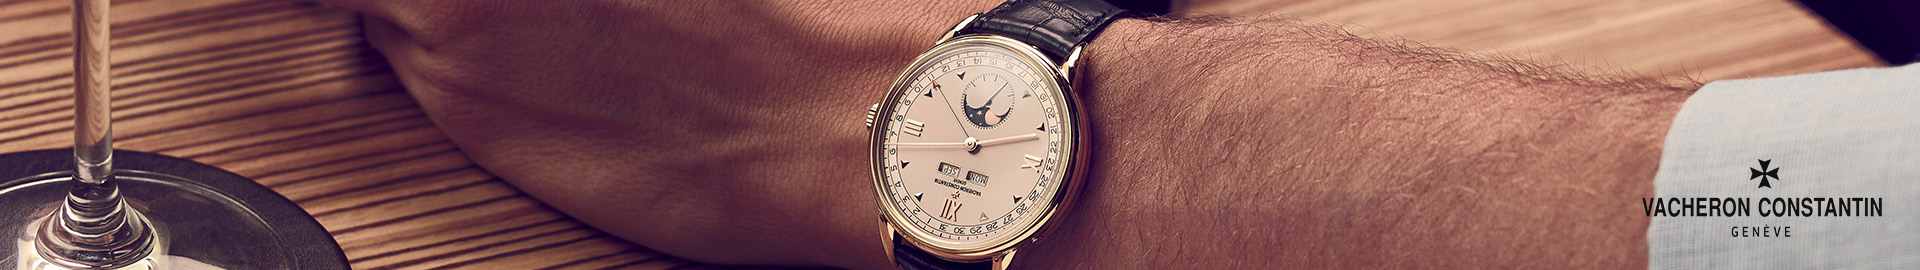 Vacheron Constantin herenhorloges Zazare Diamonds